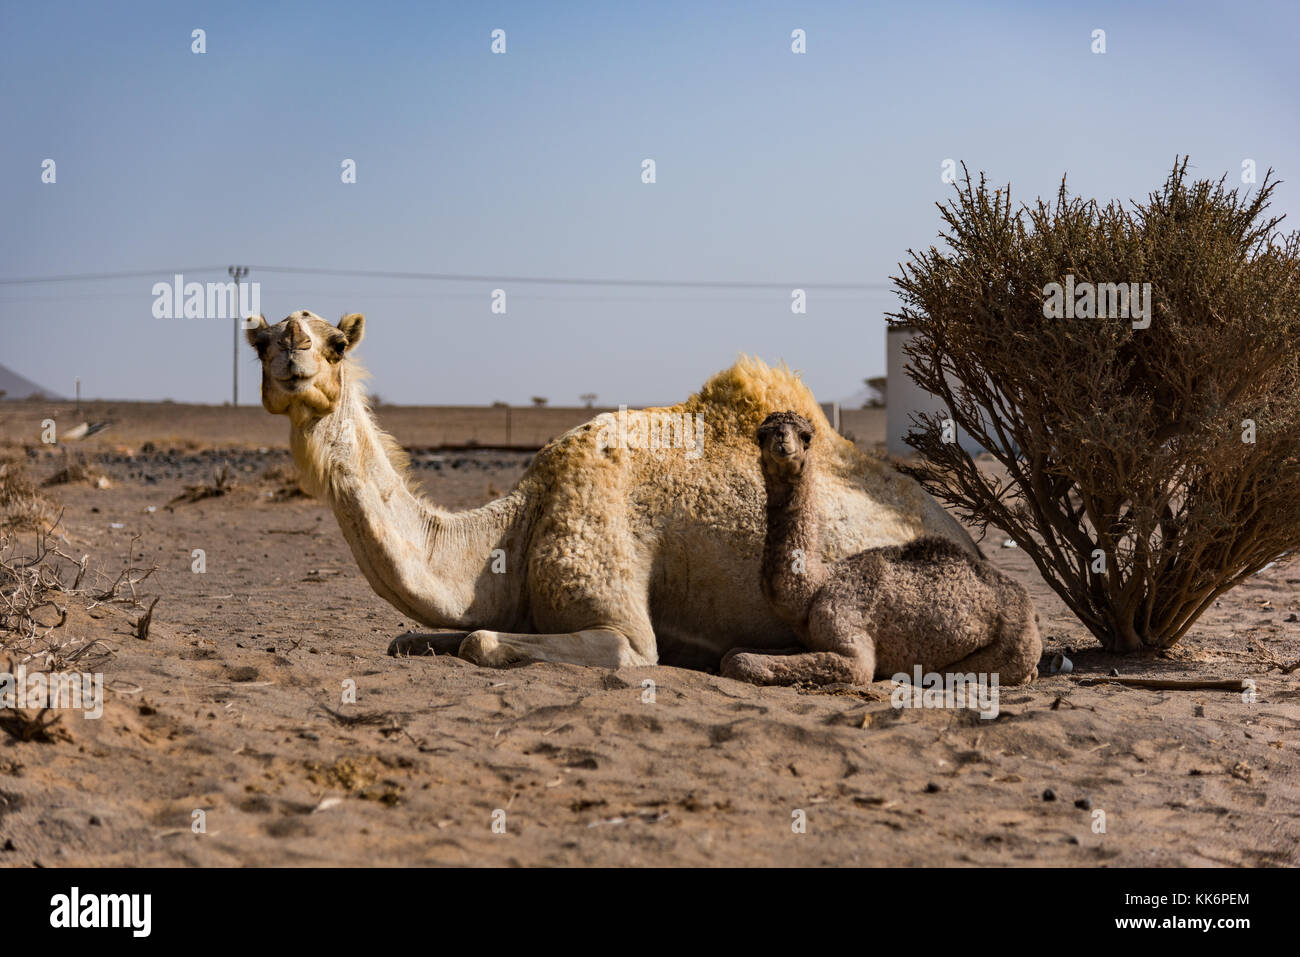 Camel mother and offspring on a camel farm in the desert north-east of Jeddah, Saudi Arabia. - Stock Image